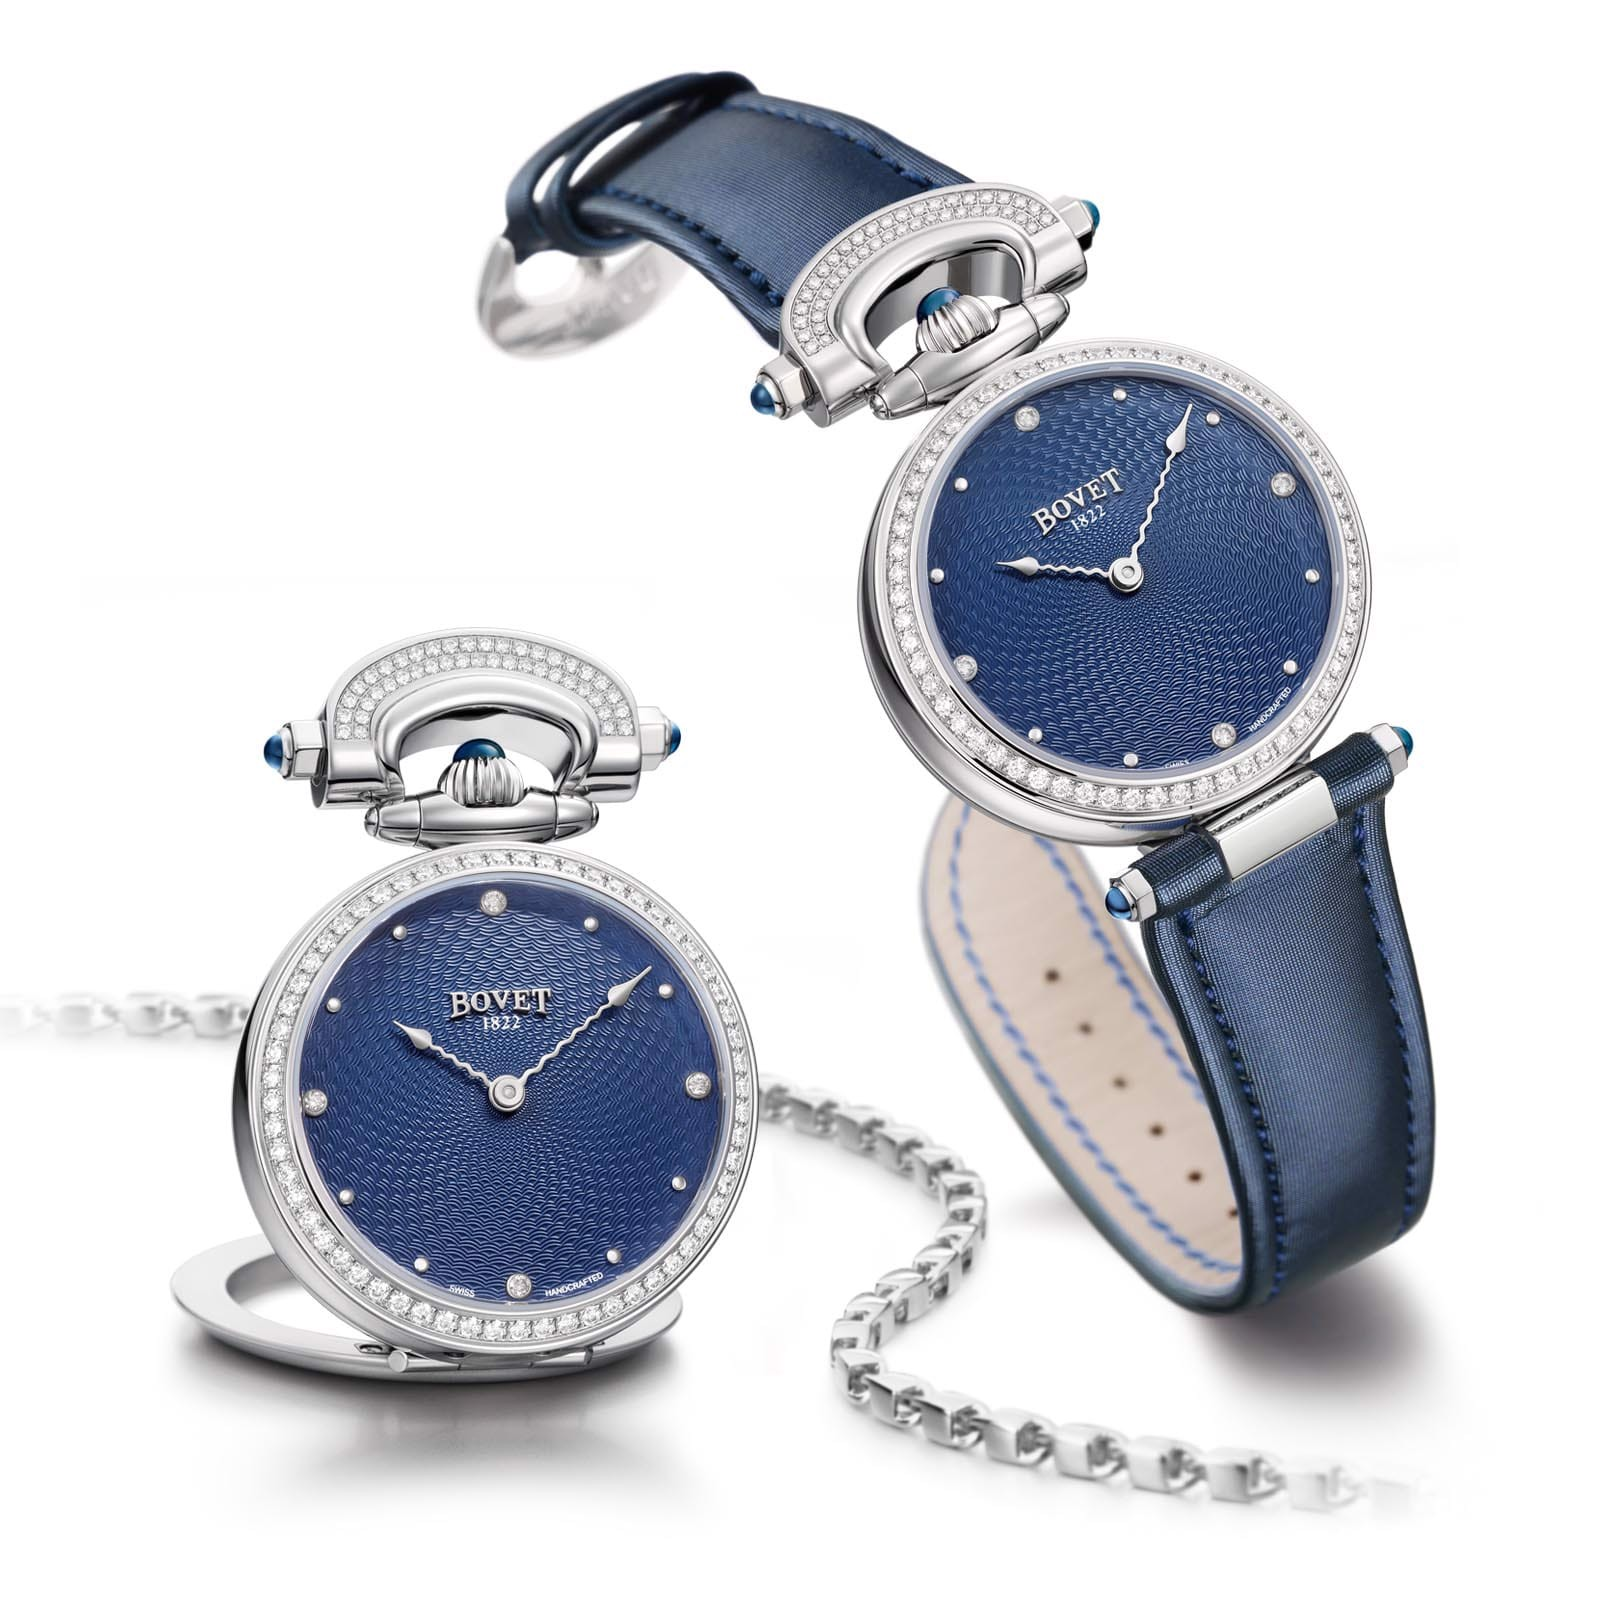 Bovet Amadeo Fleurier Miss Audrey Blue 36mm